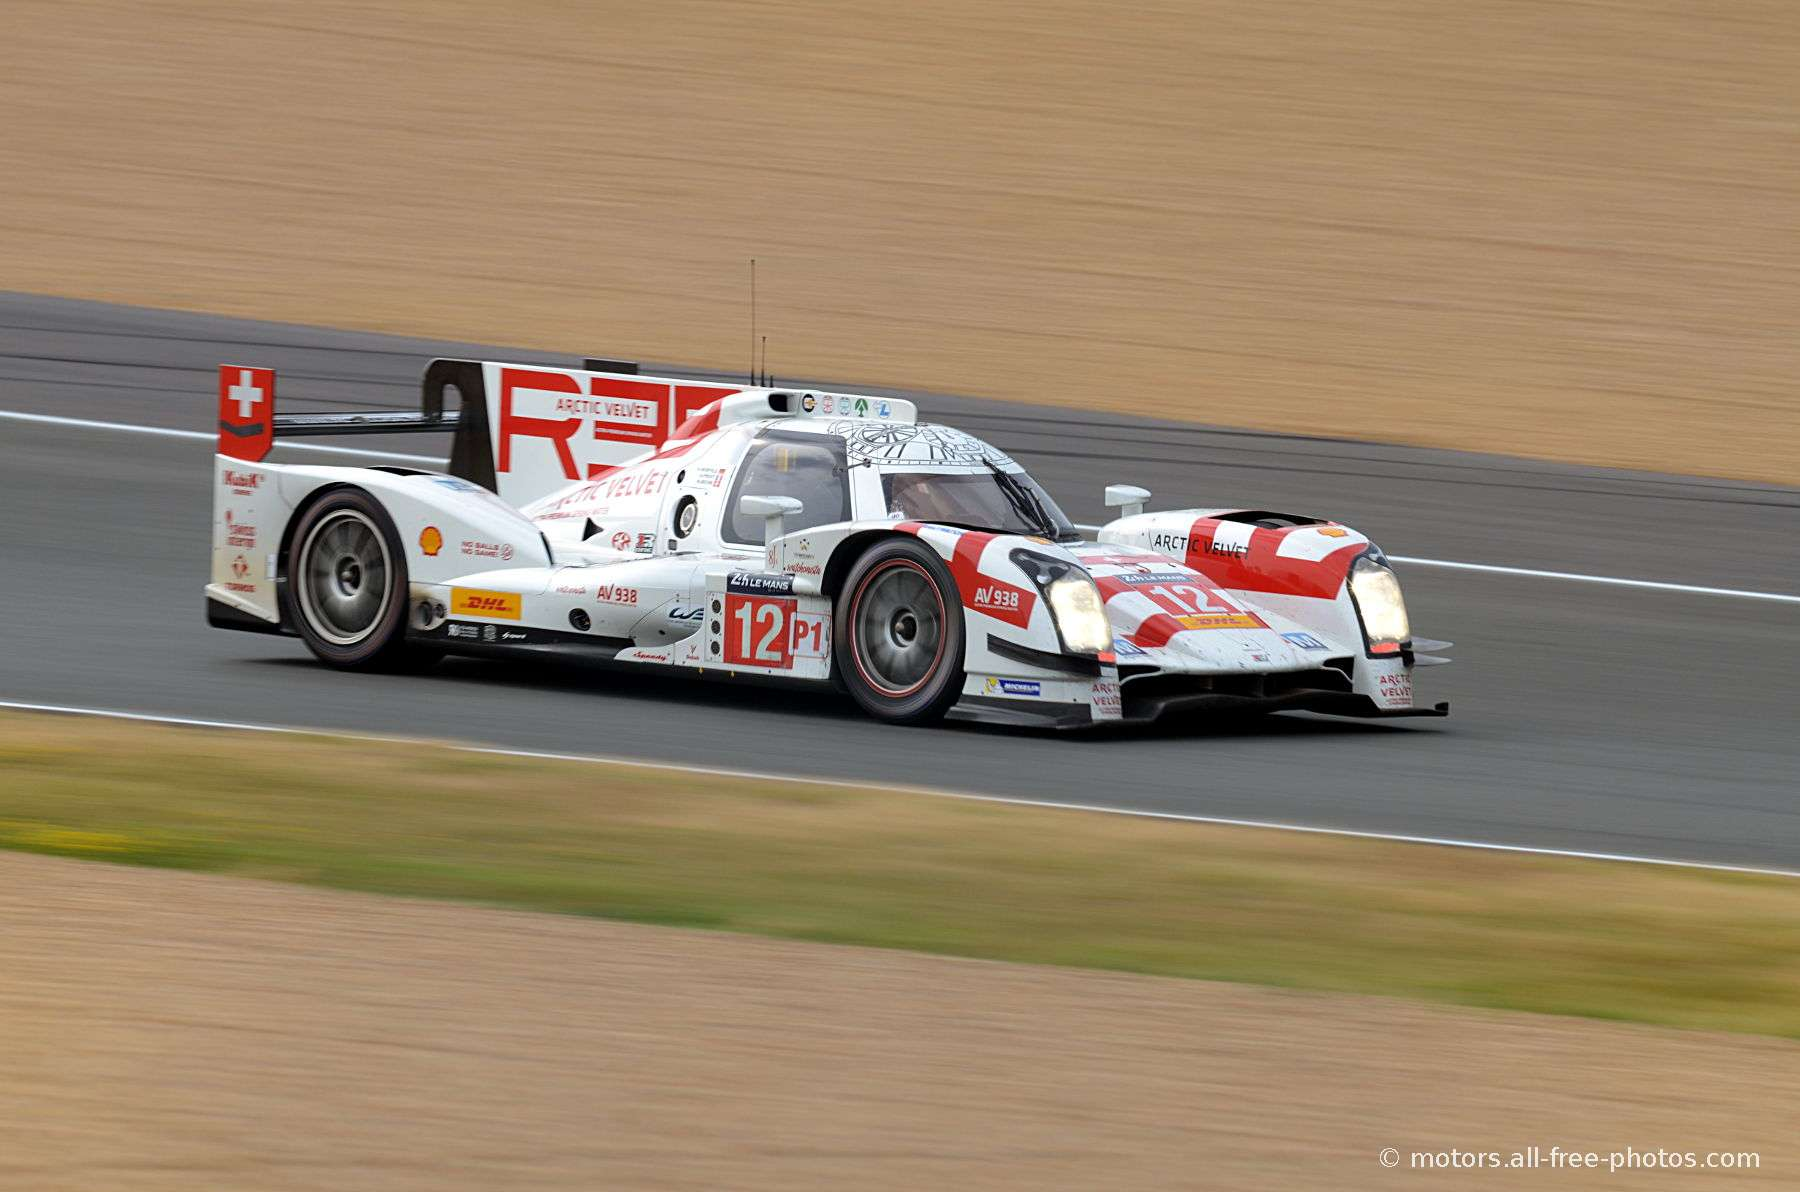 Rebellion R-ONE - AER - Team Rebellion Racing